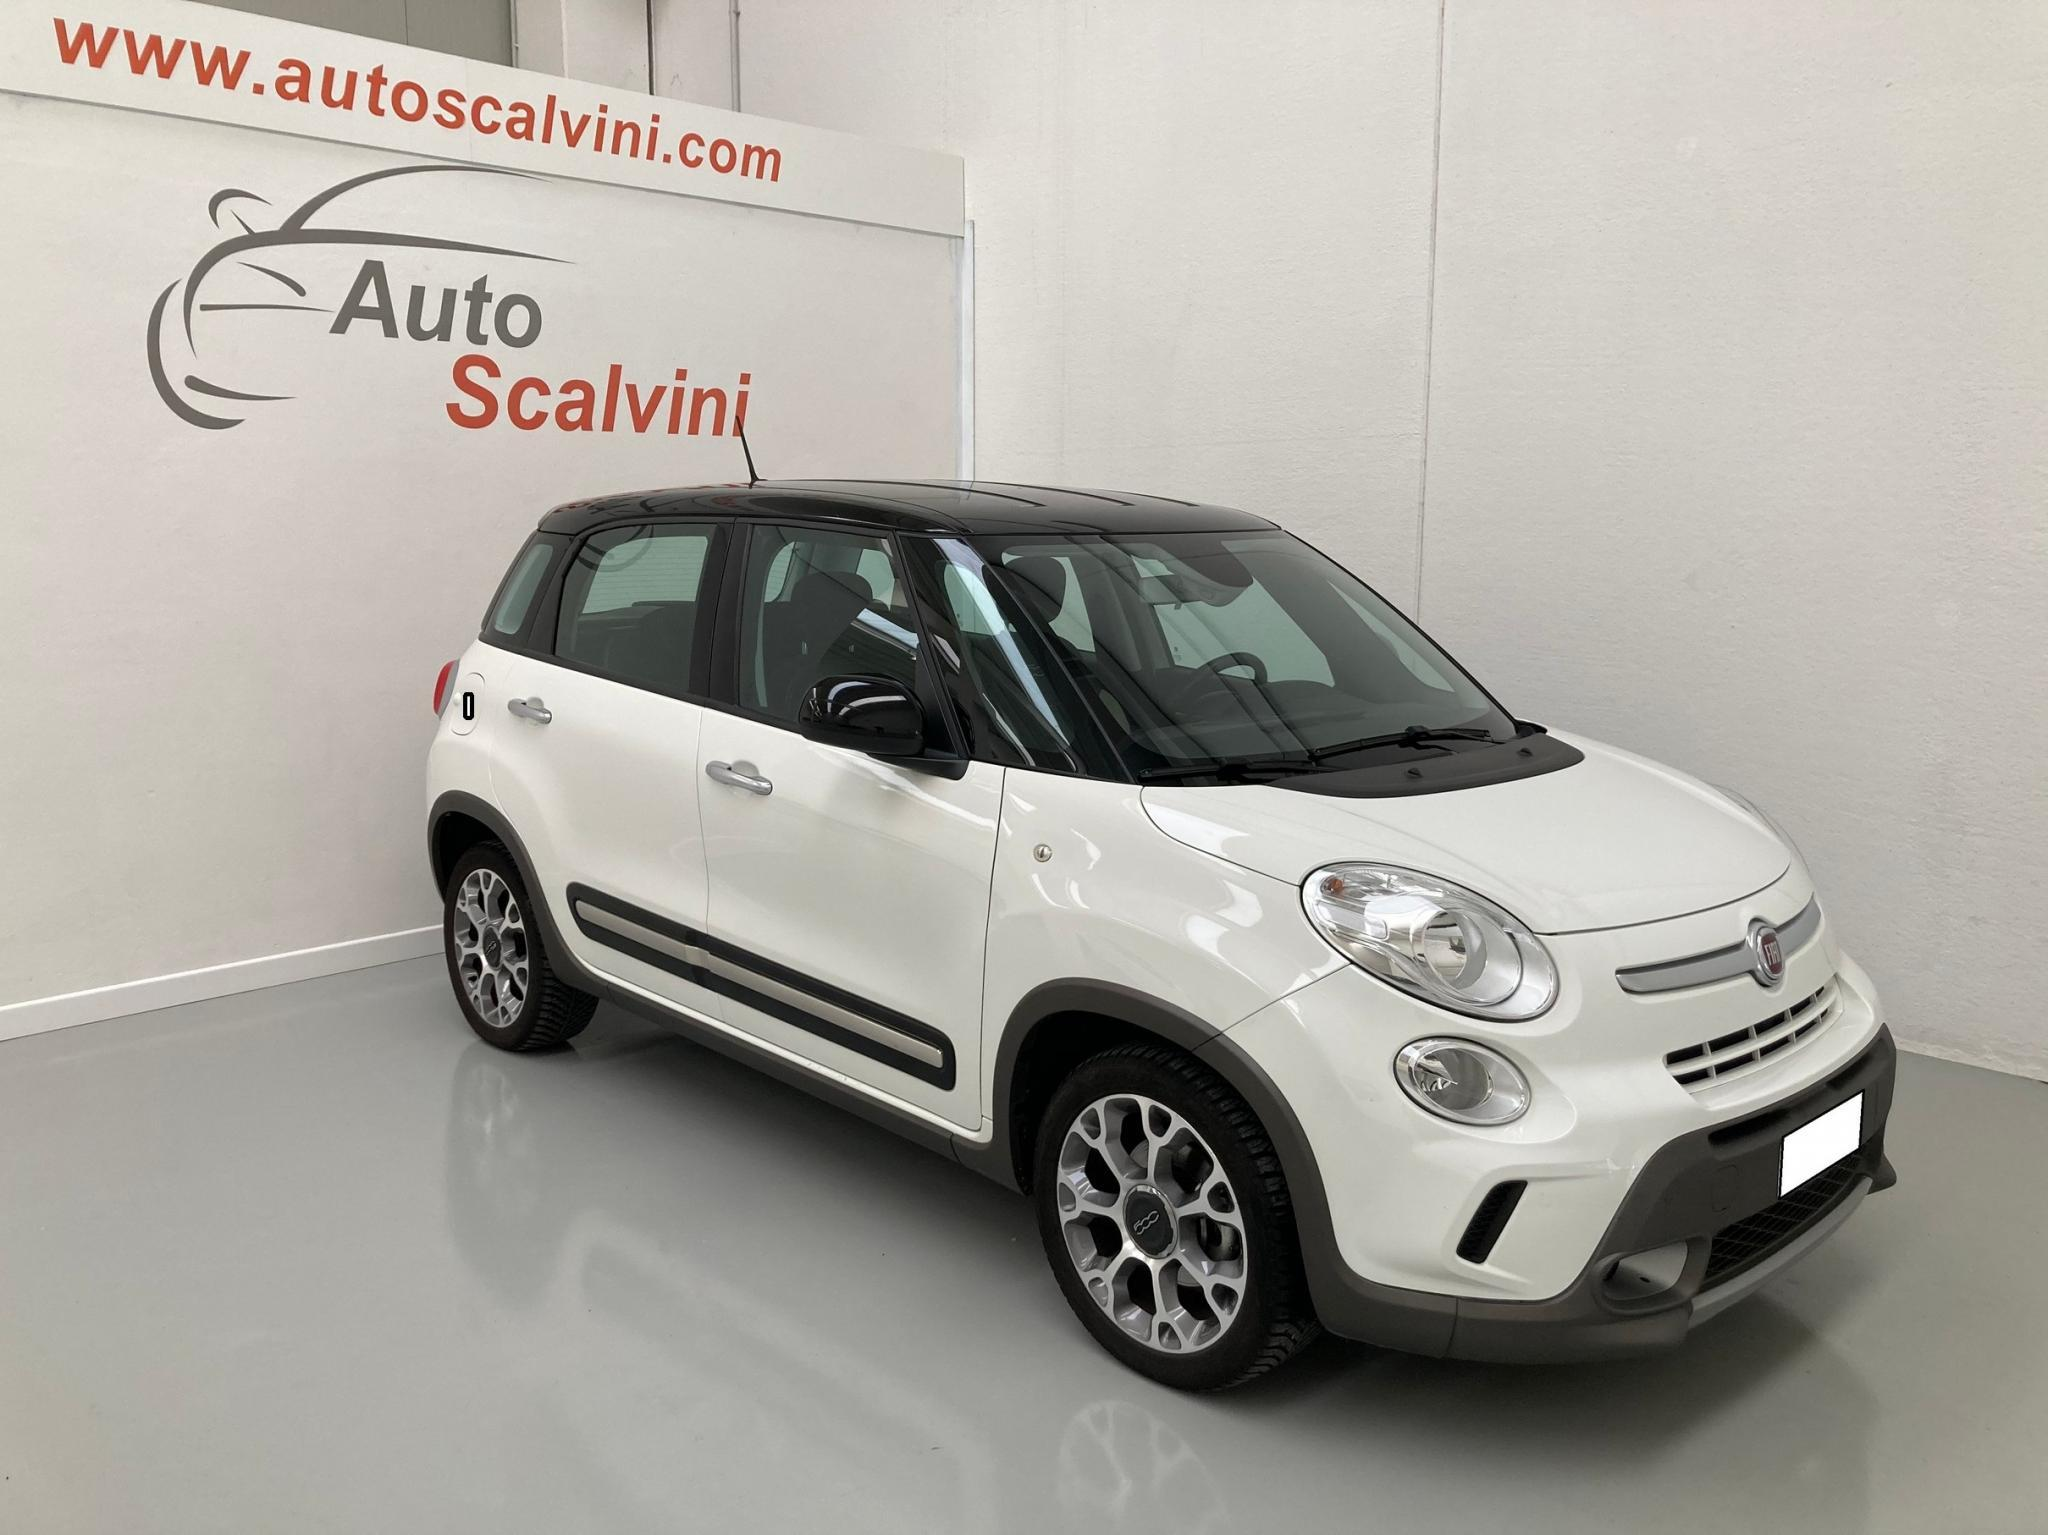 Fiat 500L 1.4 95 CV Cross #navi #UNICO PROPRIETARIO#NEOPATENTATO